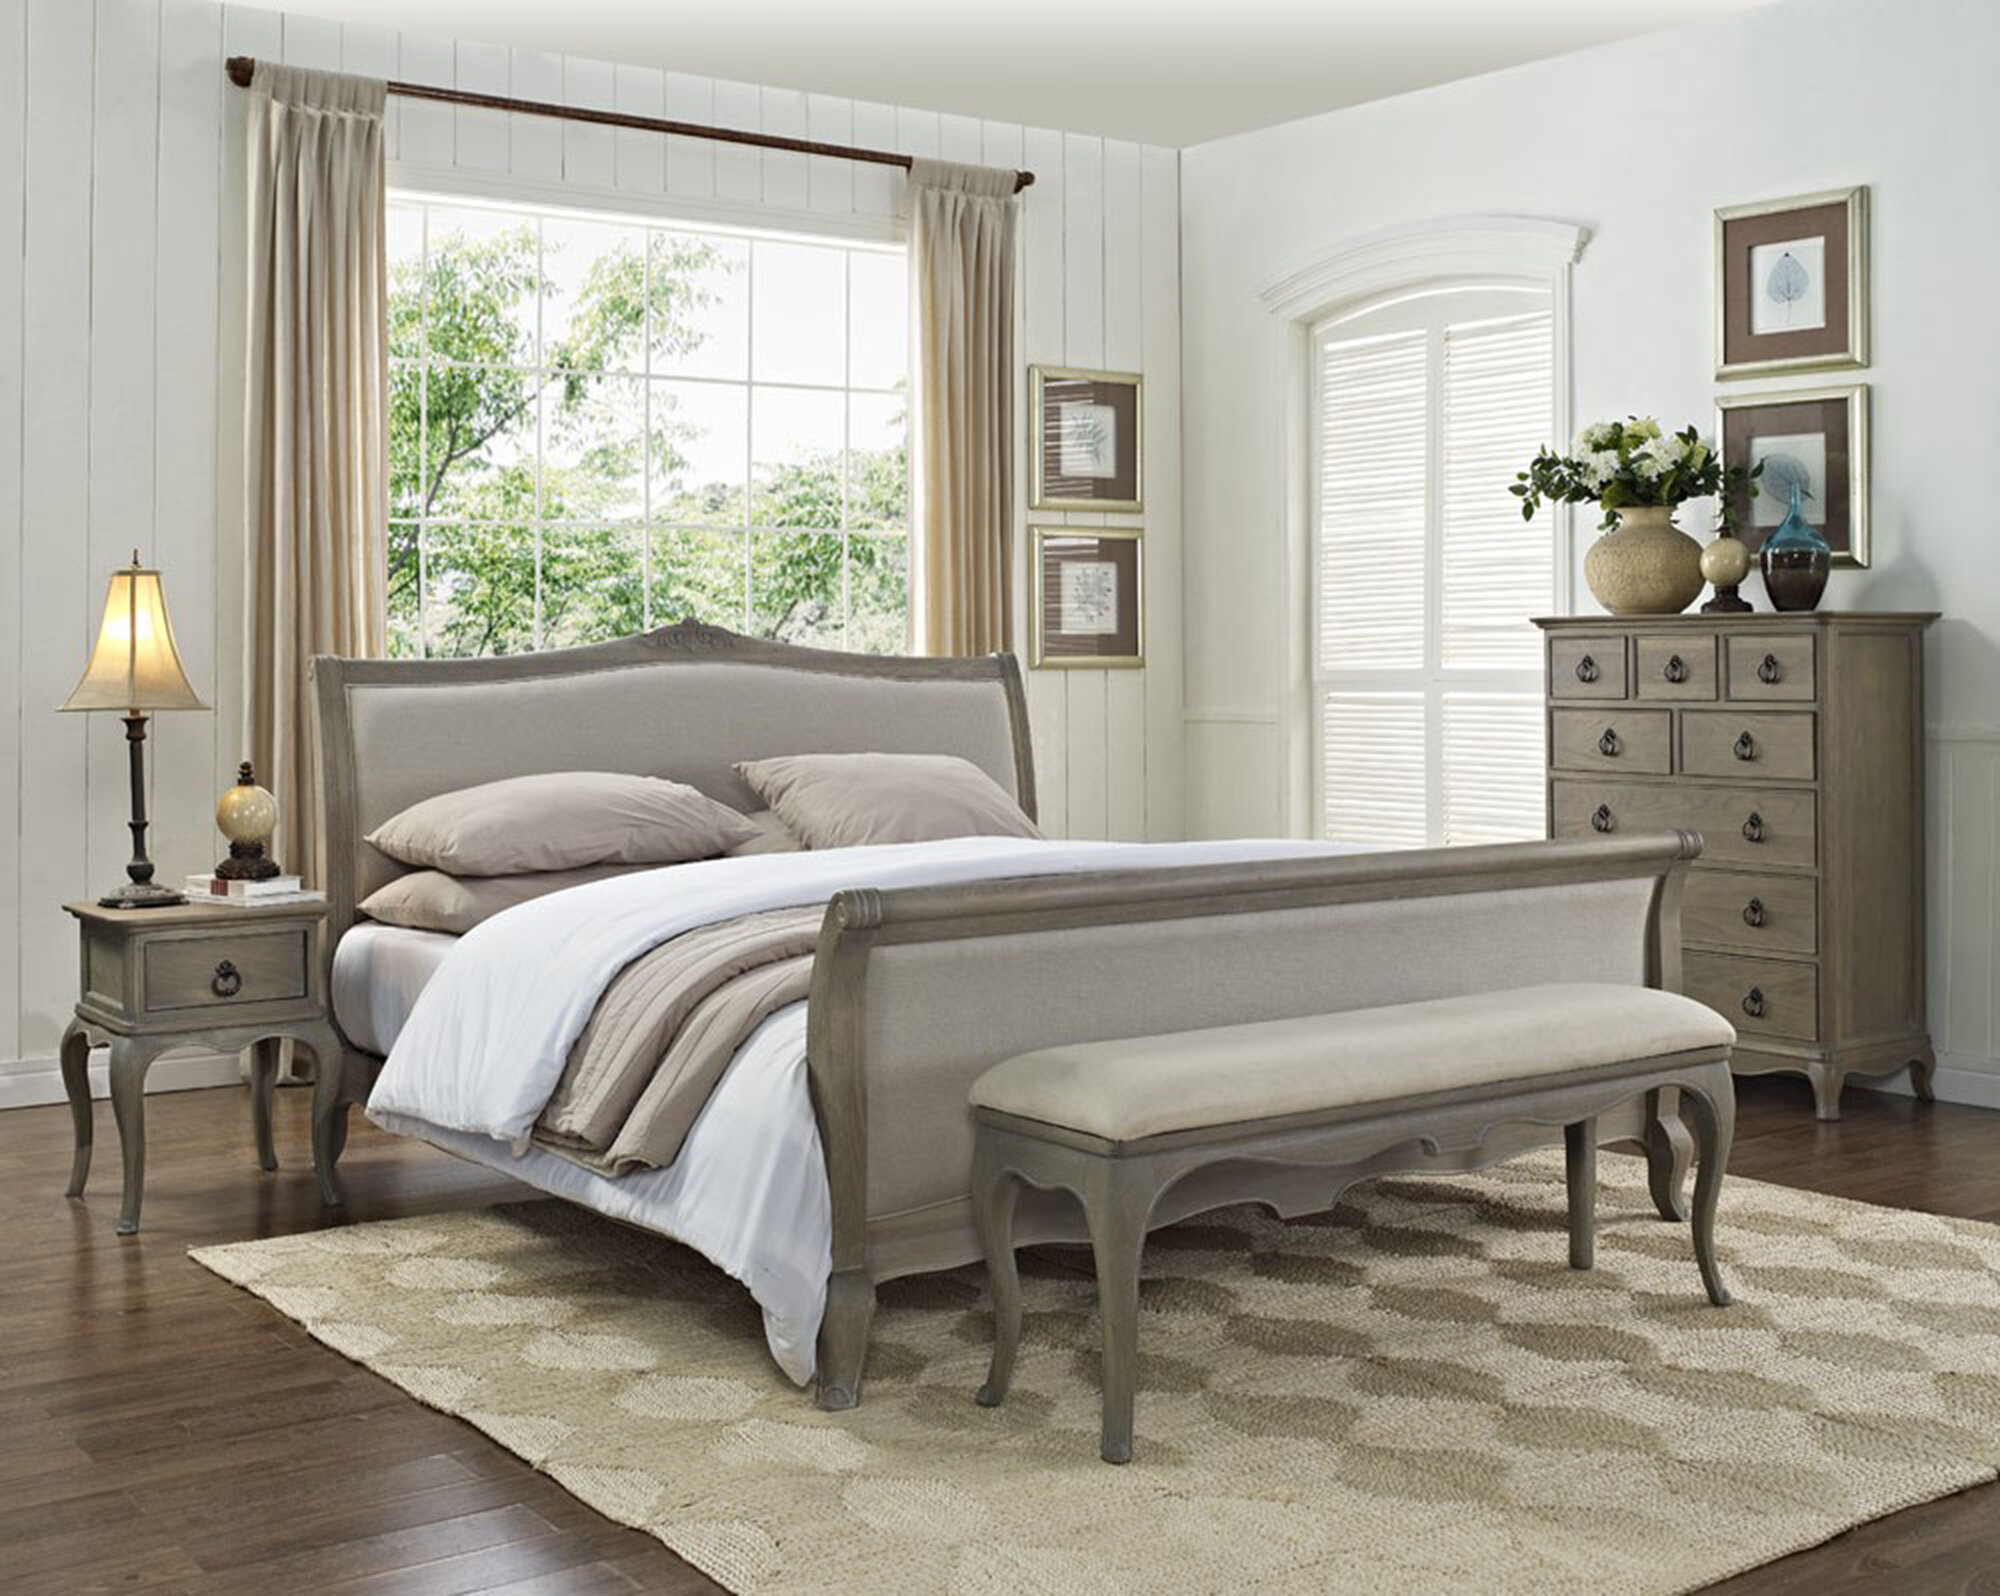 French Bedroom Furniture   Stylish And Elegant | My Master